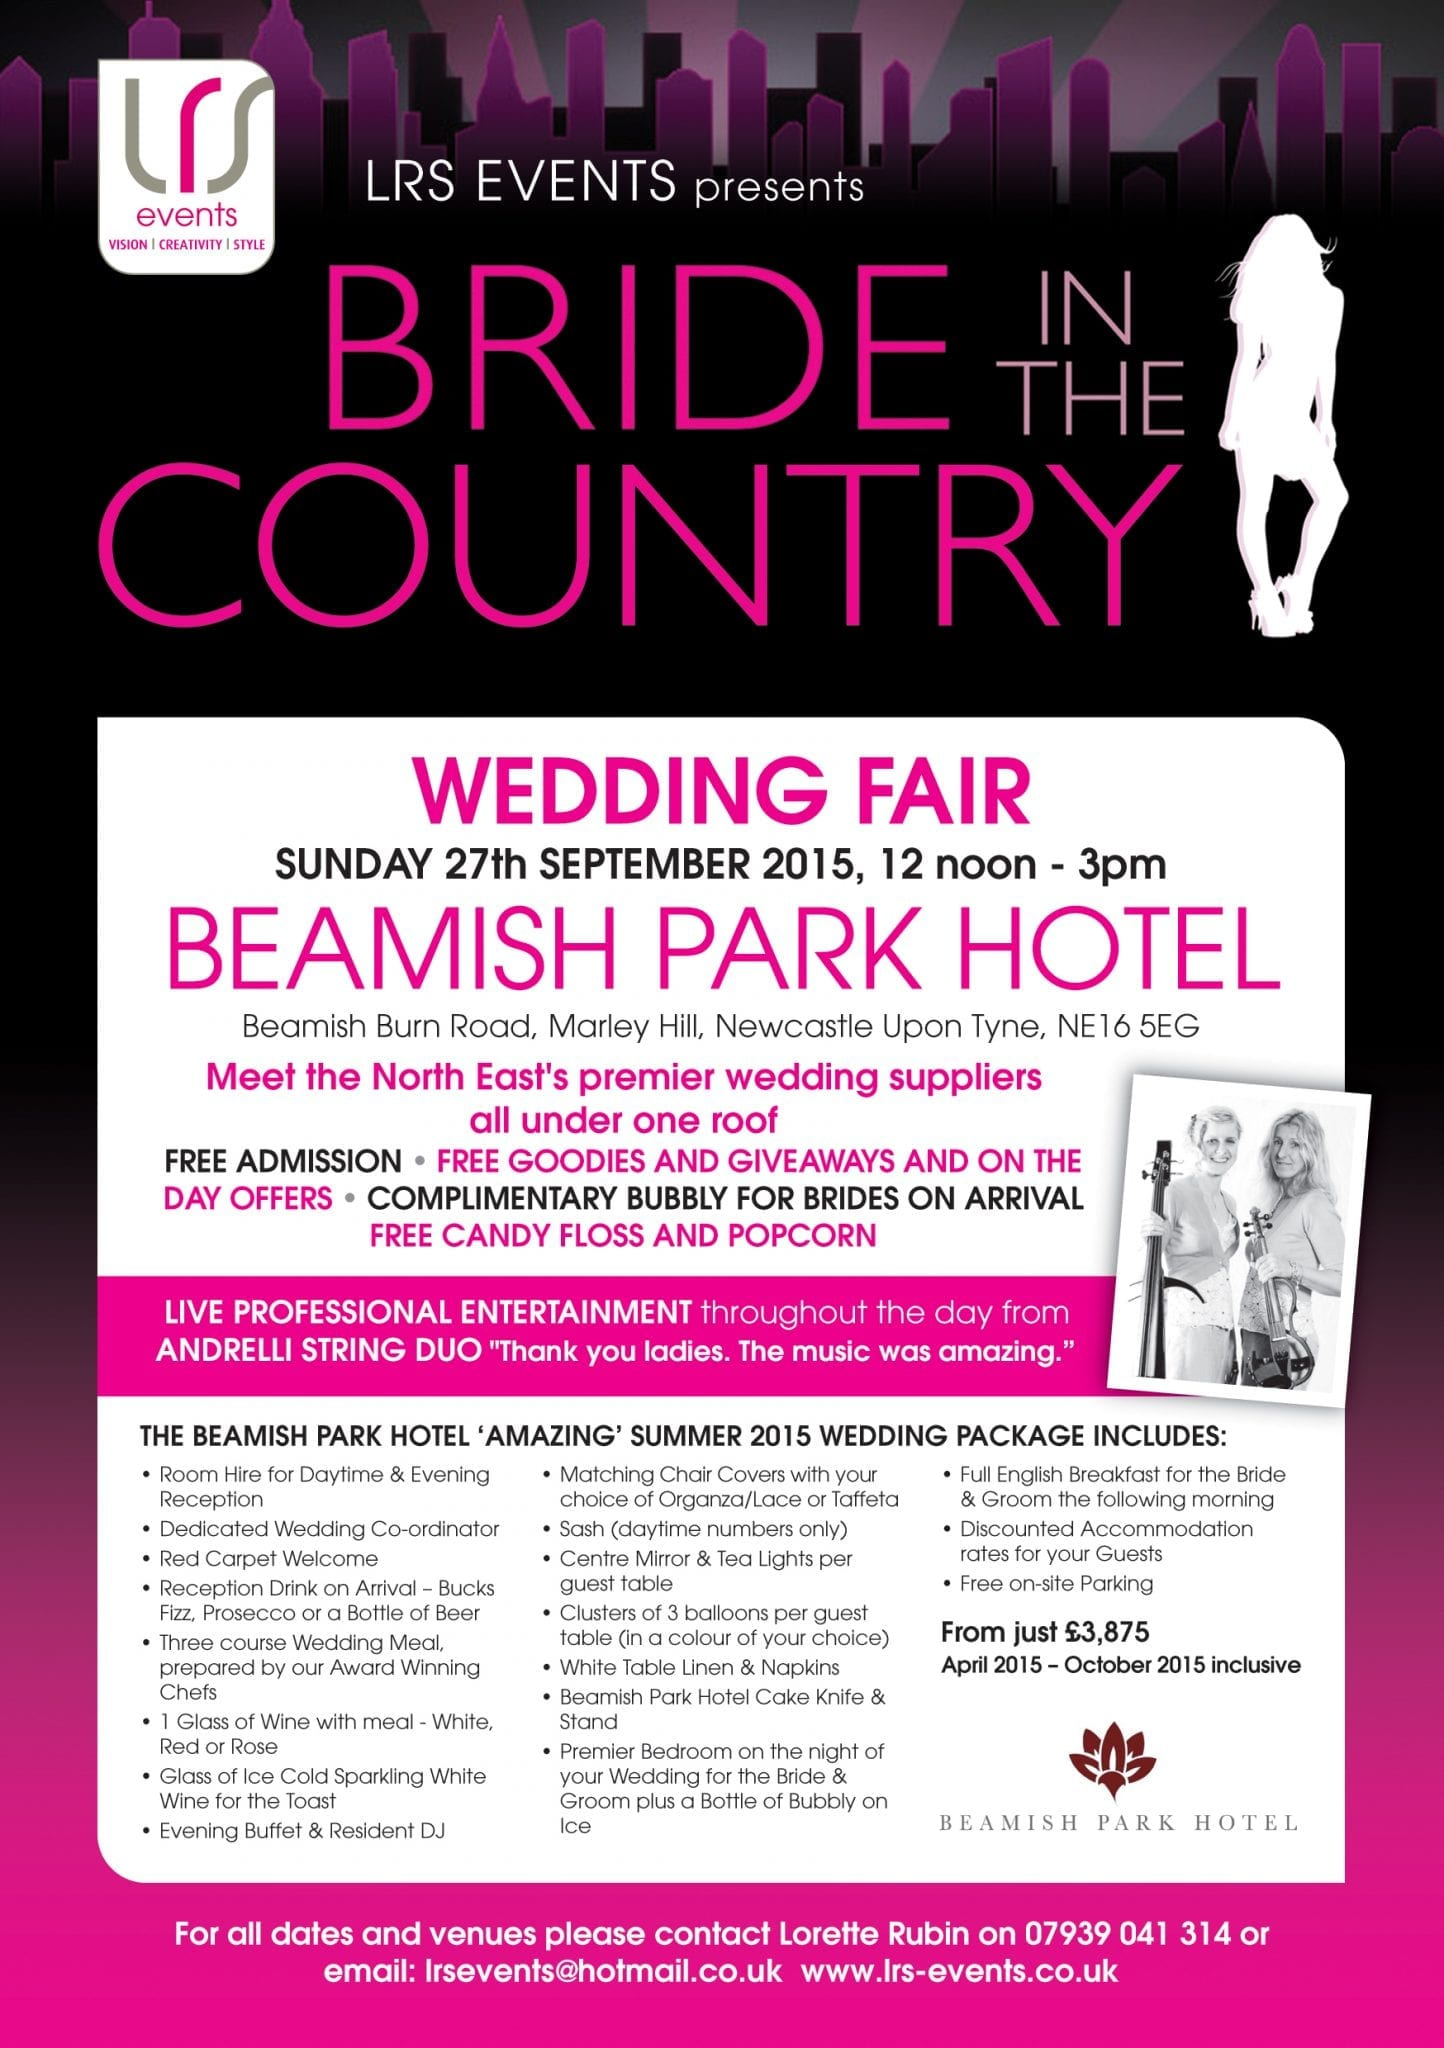 Bride in the Country Wedding Fair at Beamish Park Hotel